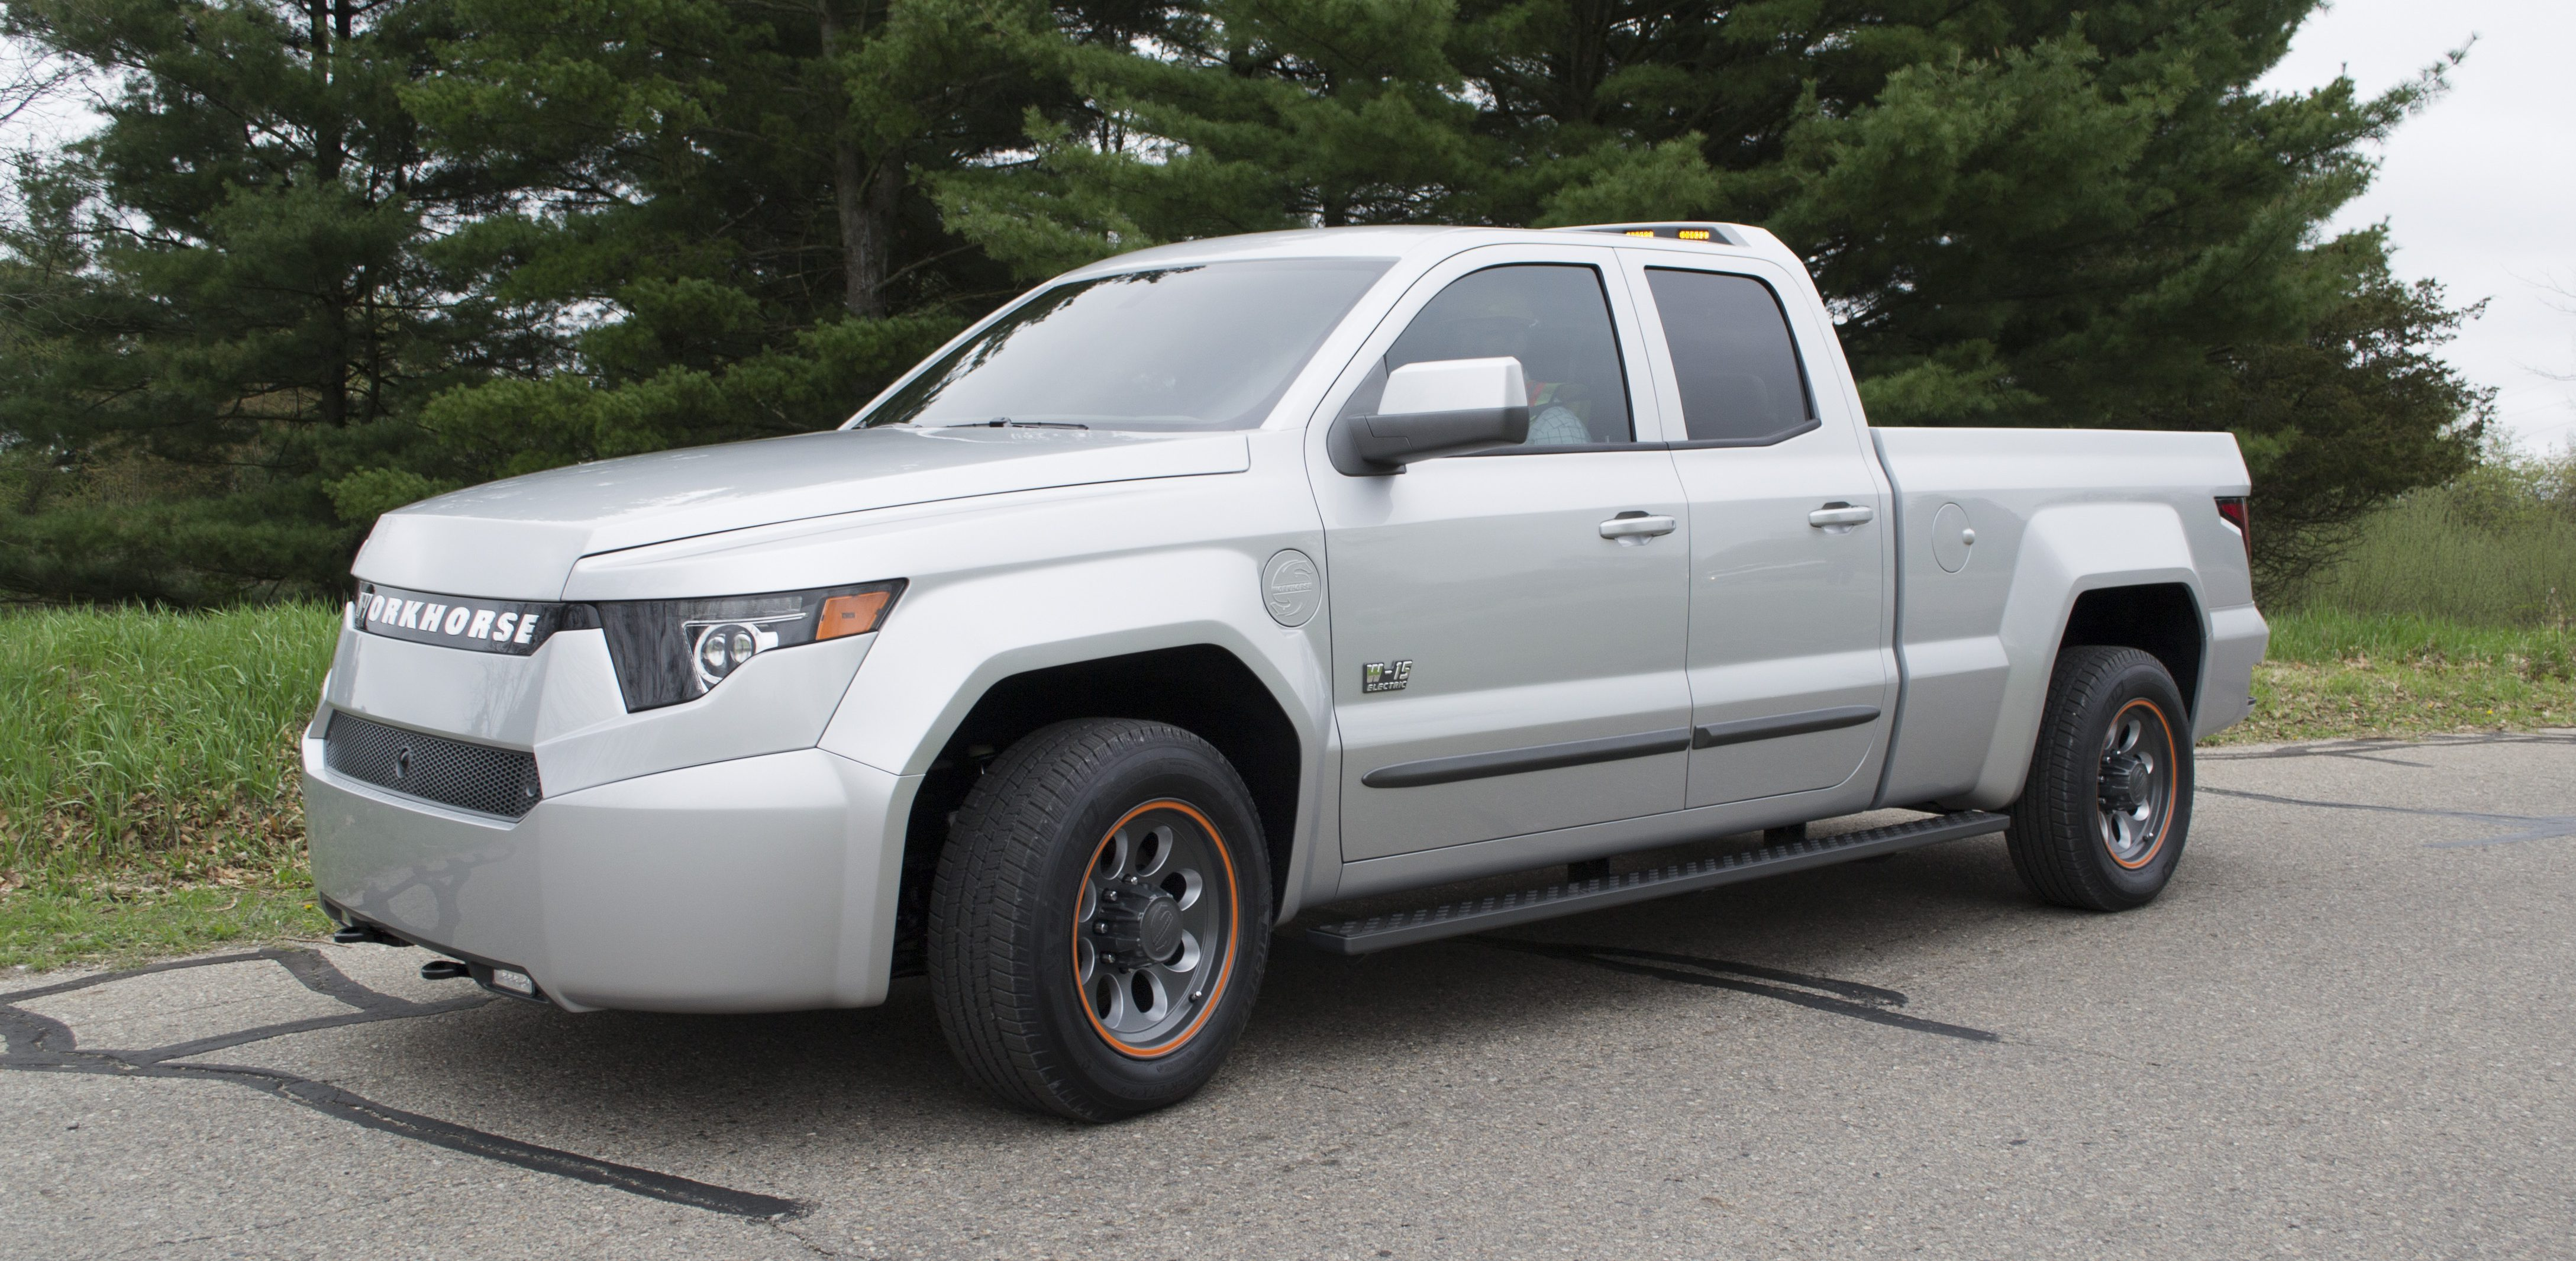 GM selling Lordstown plant to Workhorse to build electric trucks